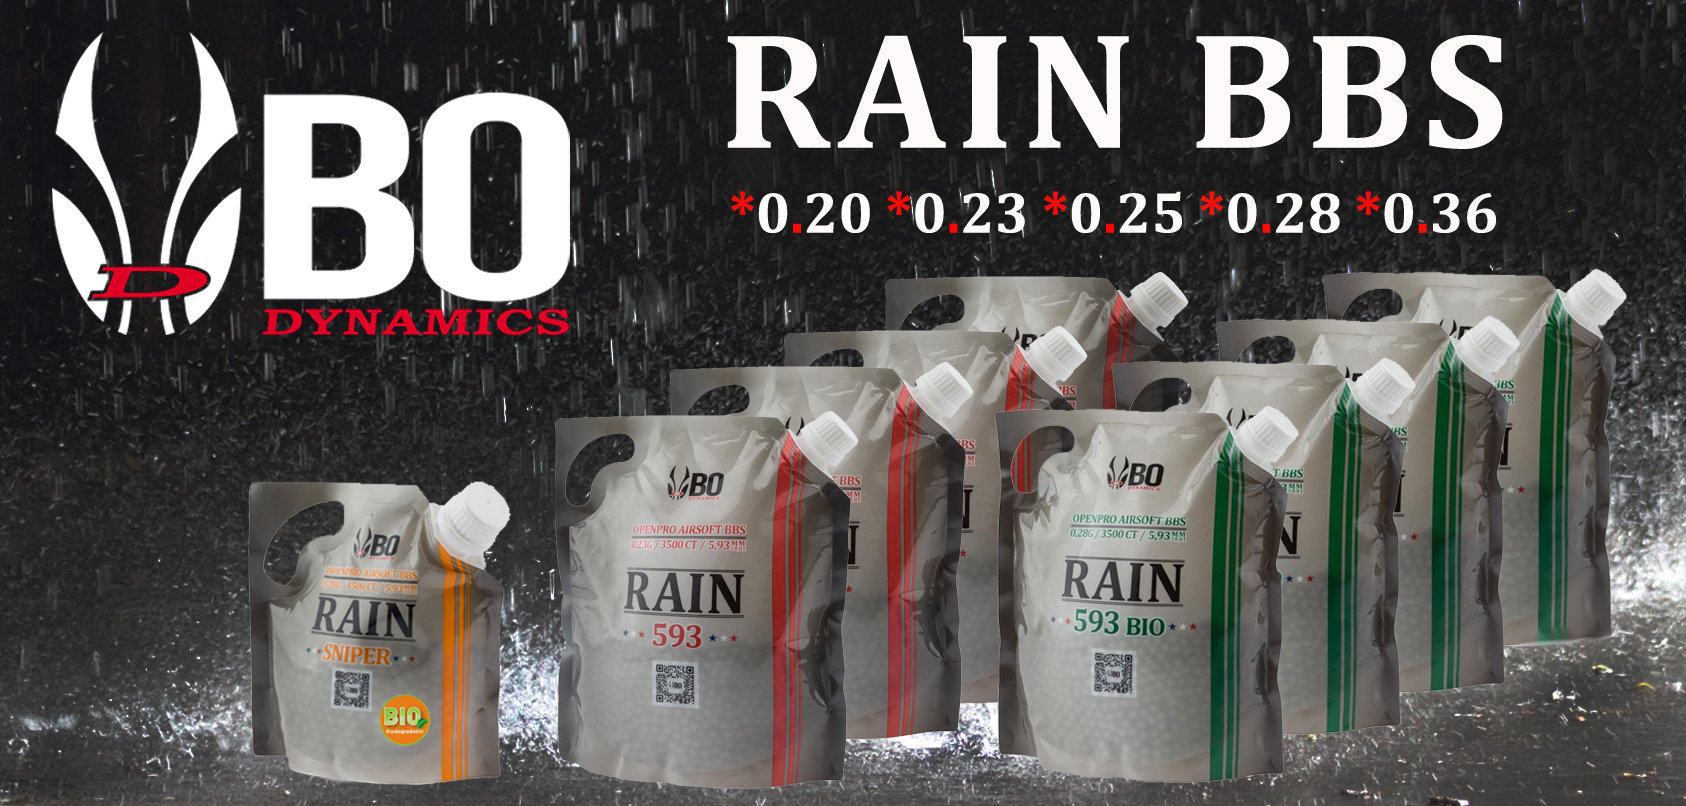 Photo BBS BO RAIN 595 BIO - 3500 rds - 0,25g